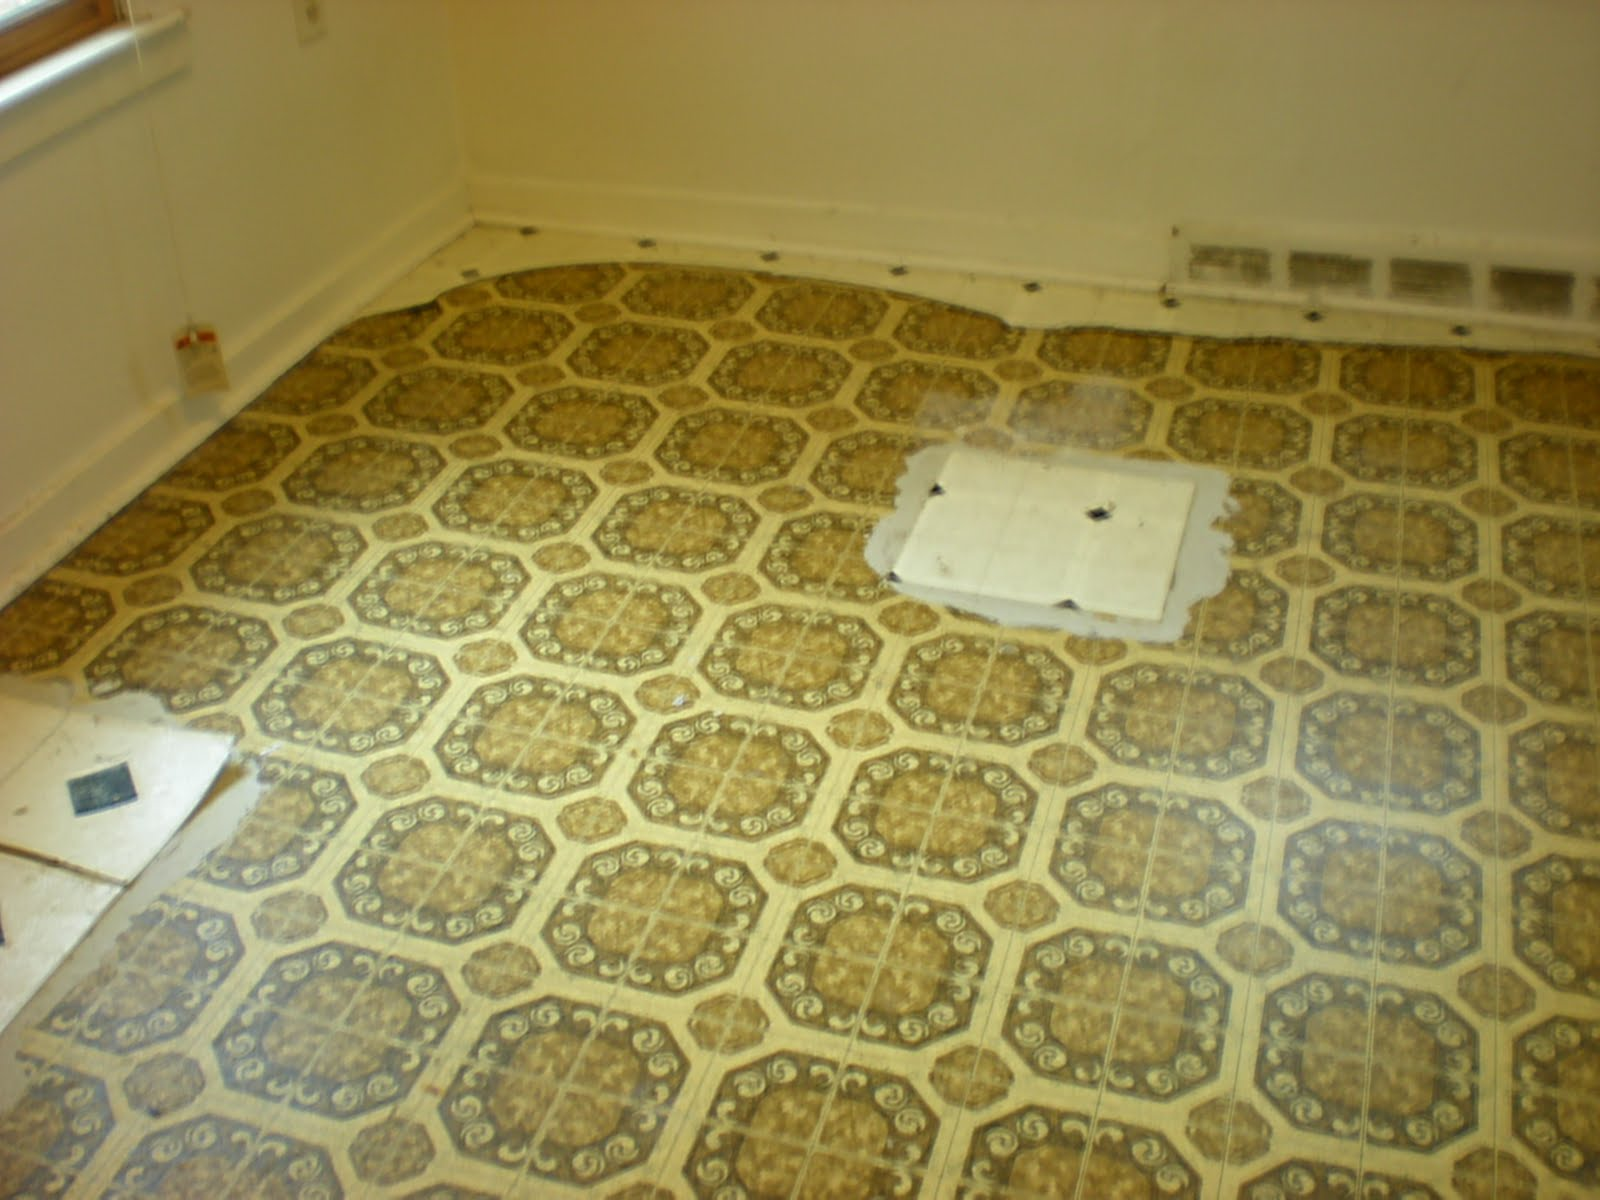 Exscapes reflooring my apartment for Vintage linoleum flooring